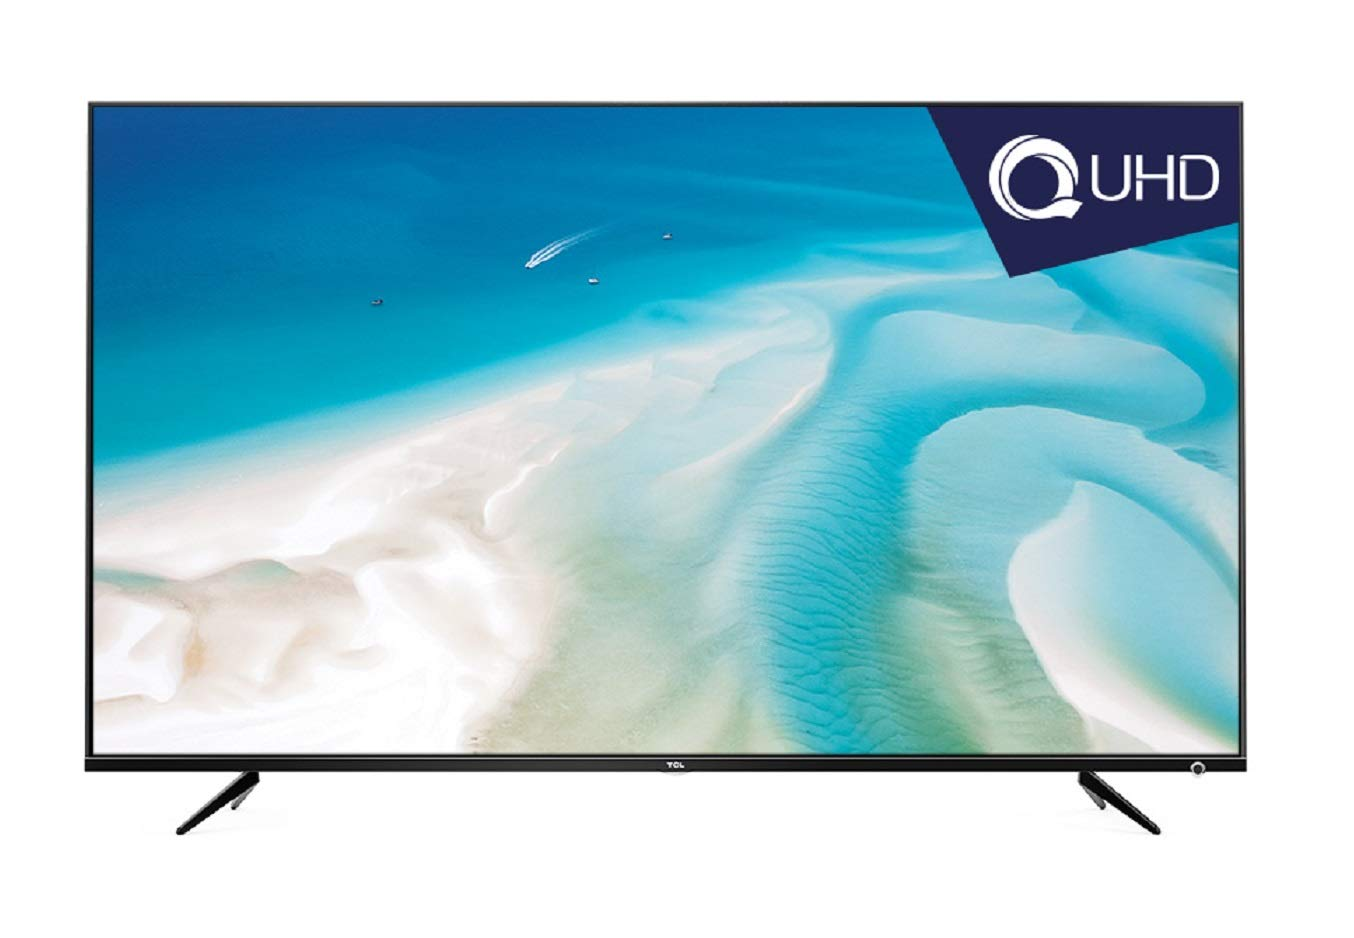 Tcl 107 9 Cm 43 Inches 4k Uhd Led Smart Tv 43p6us Black Buy Online In Singapore Electronics Products In Singapore See Prices Reviews And Free Delivery Over Free Desertcart